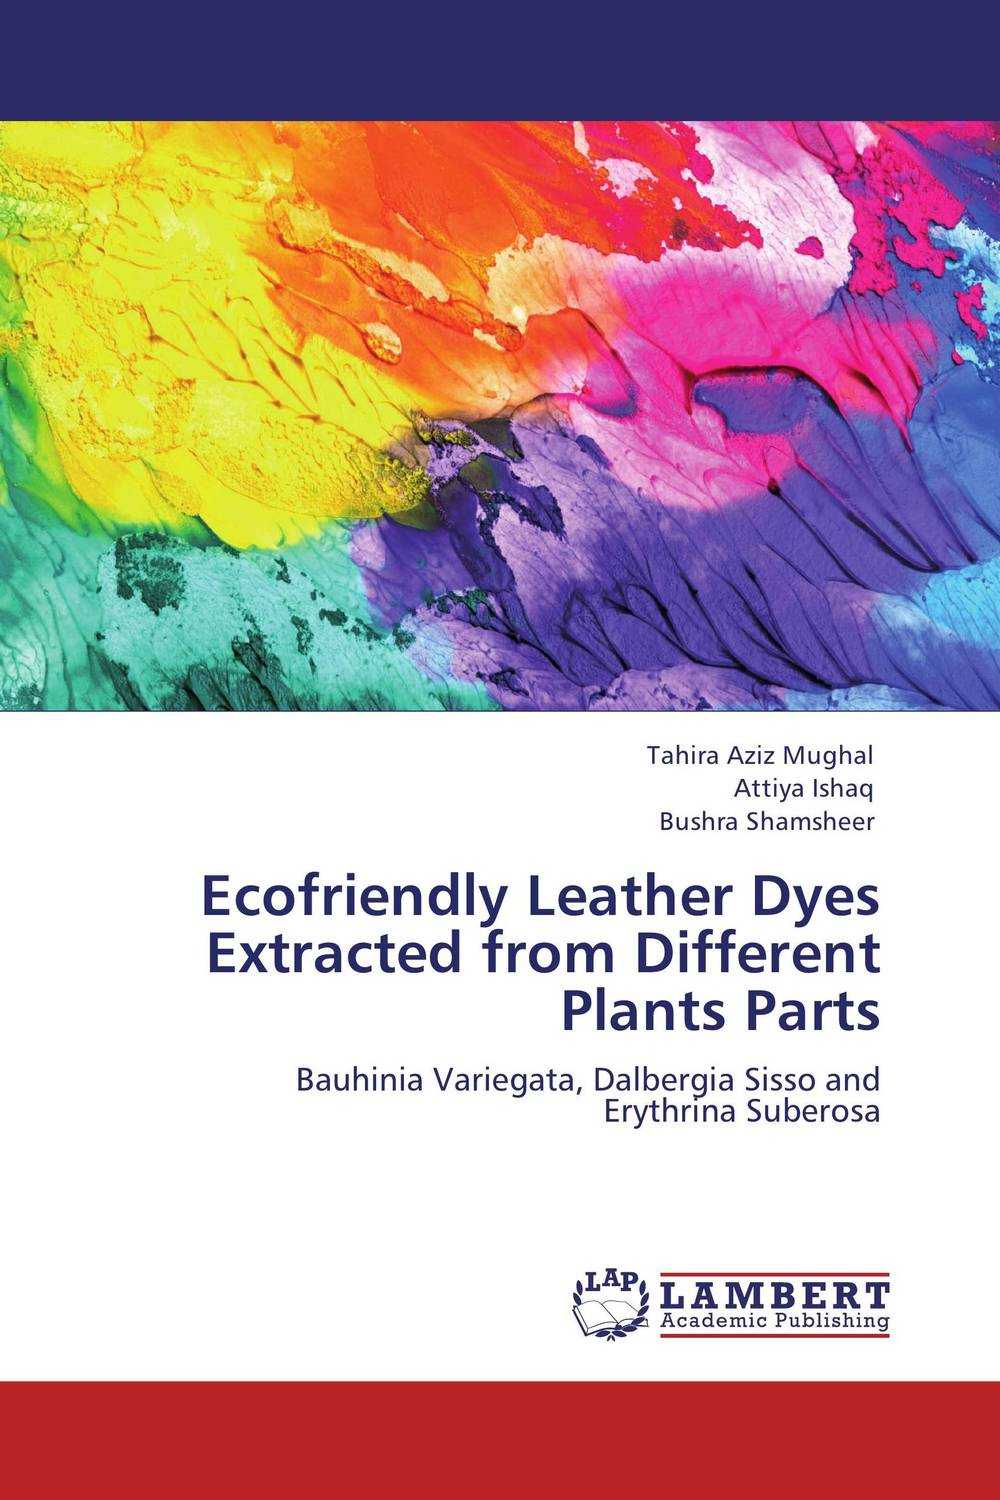 Ecofriendly Leather Dyes Extracted from Different Plants Parts